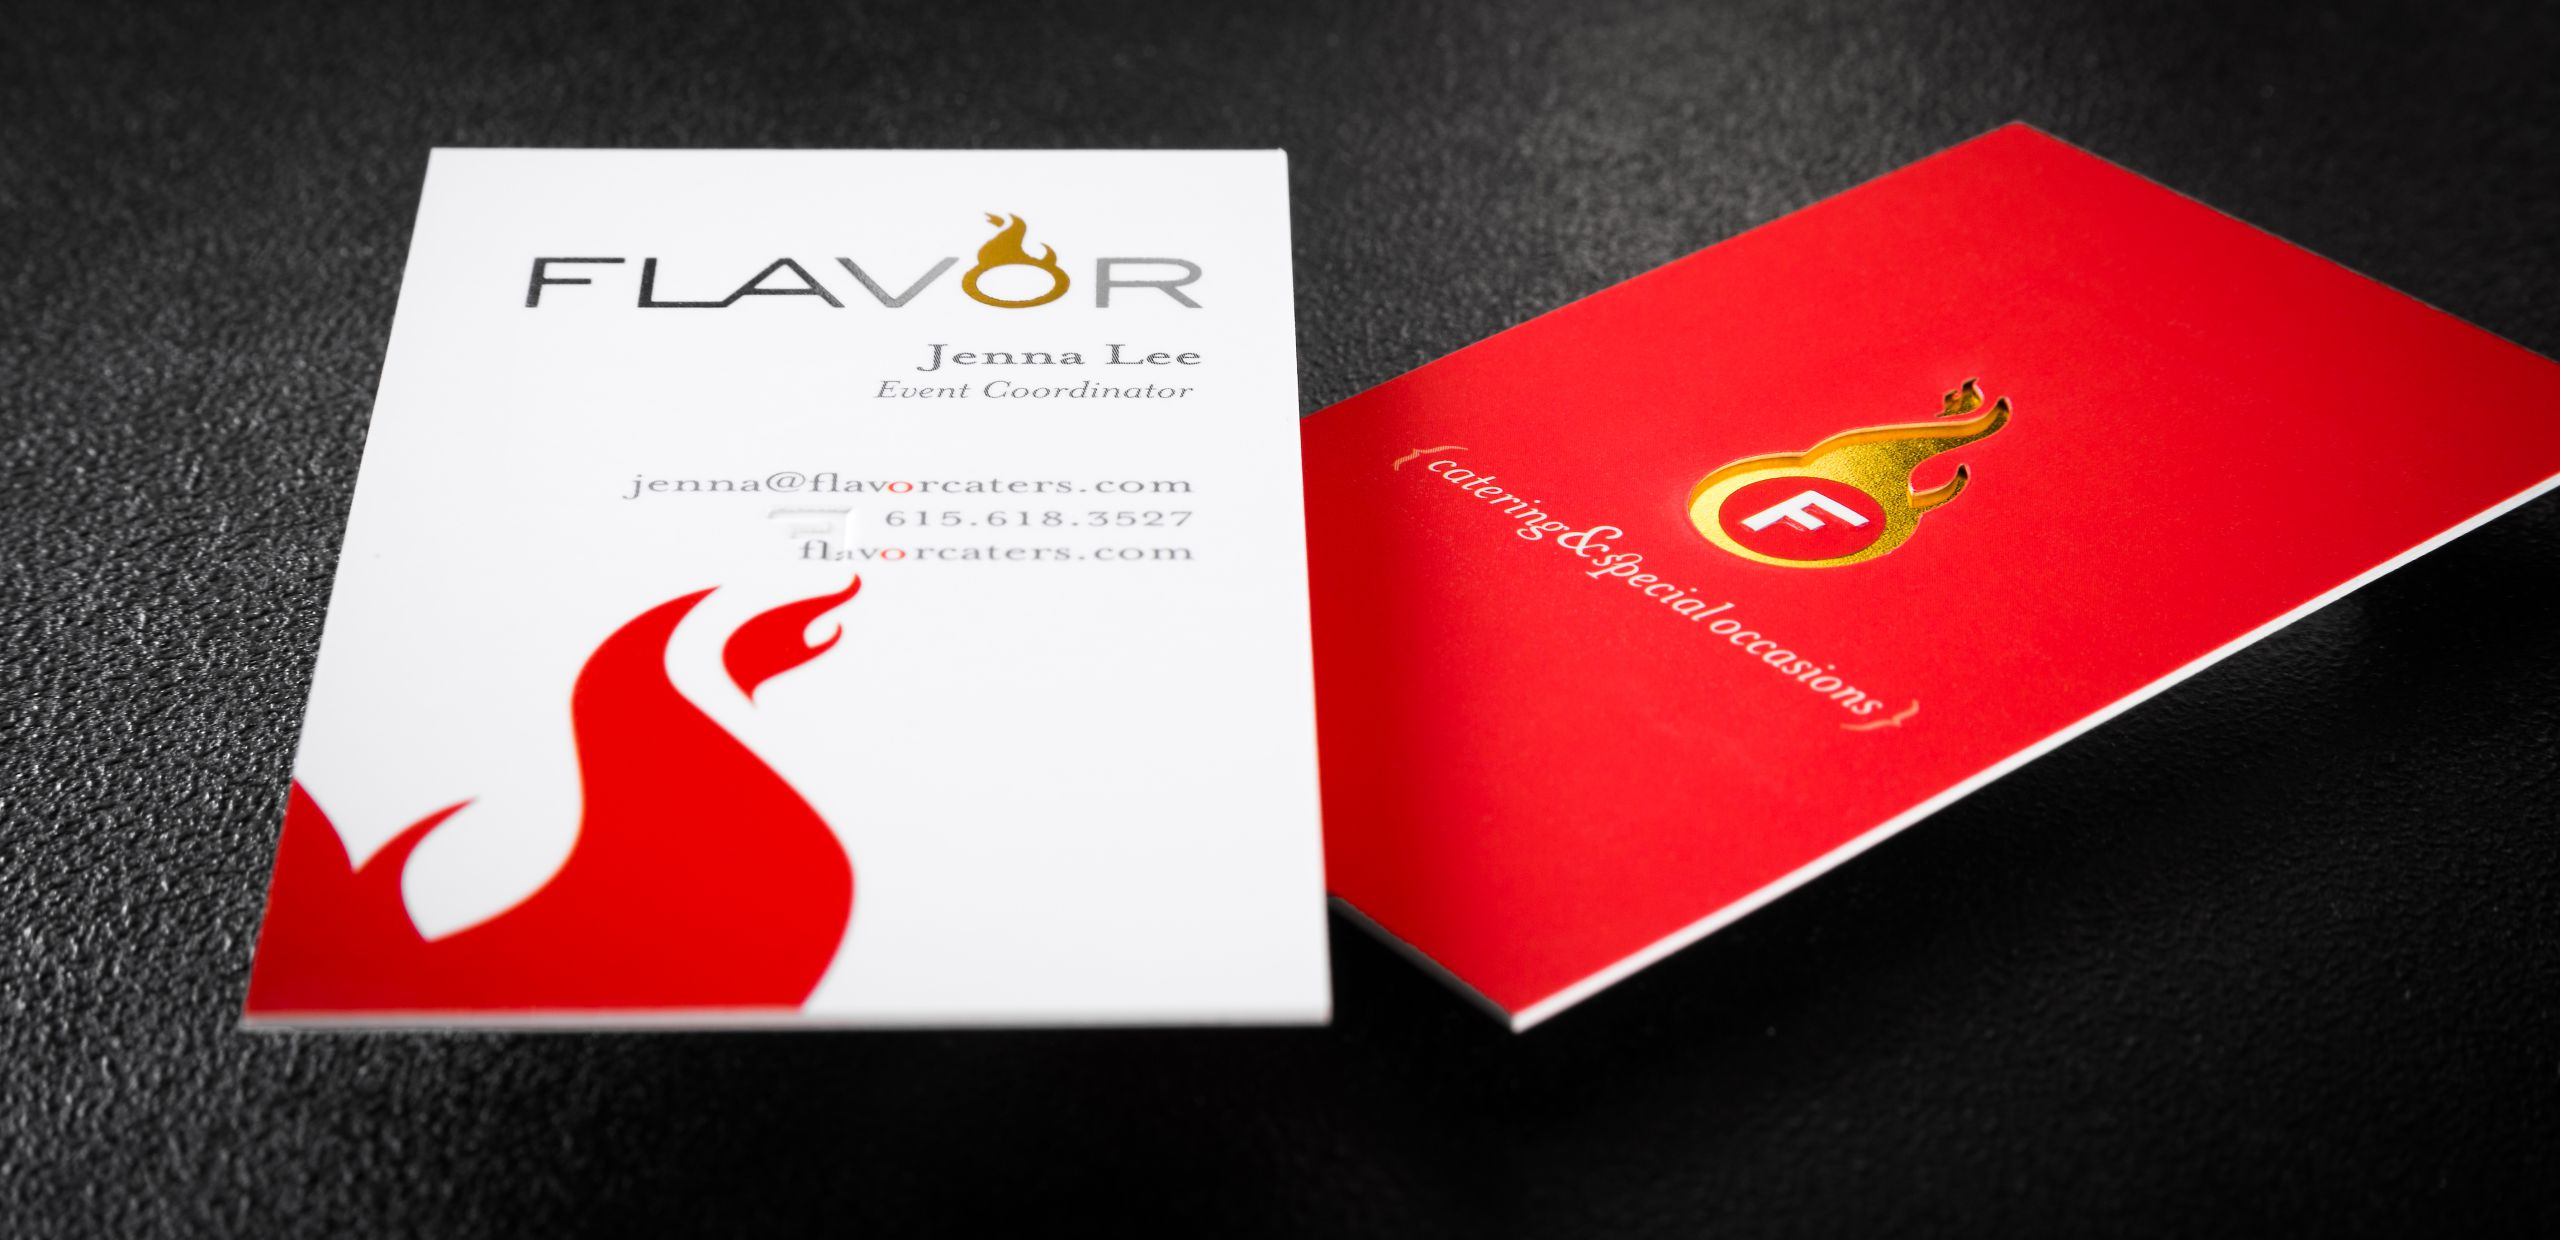 Custom online business card plastic card printing 4colorprint 32pt suede laminated cards custom die cut gold foil embossing reheart Image collections